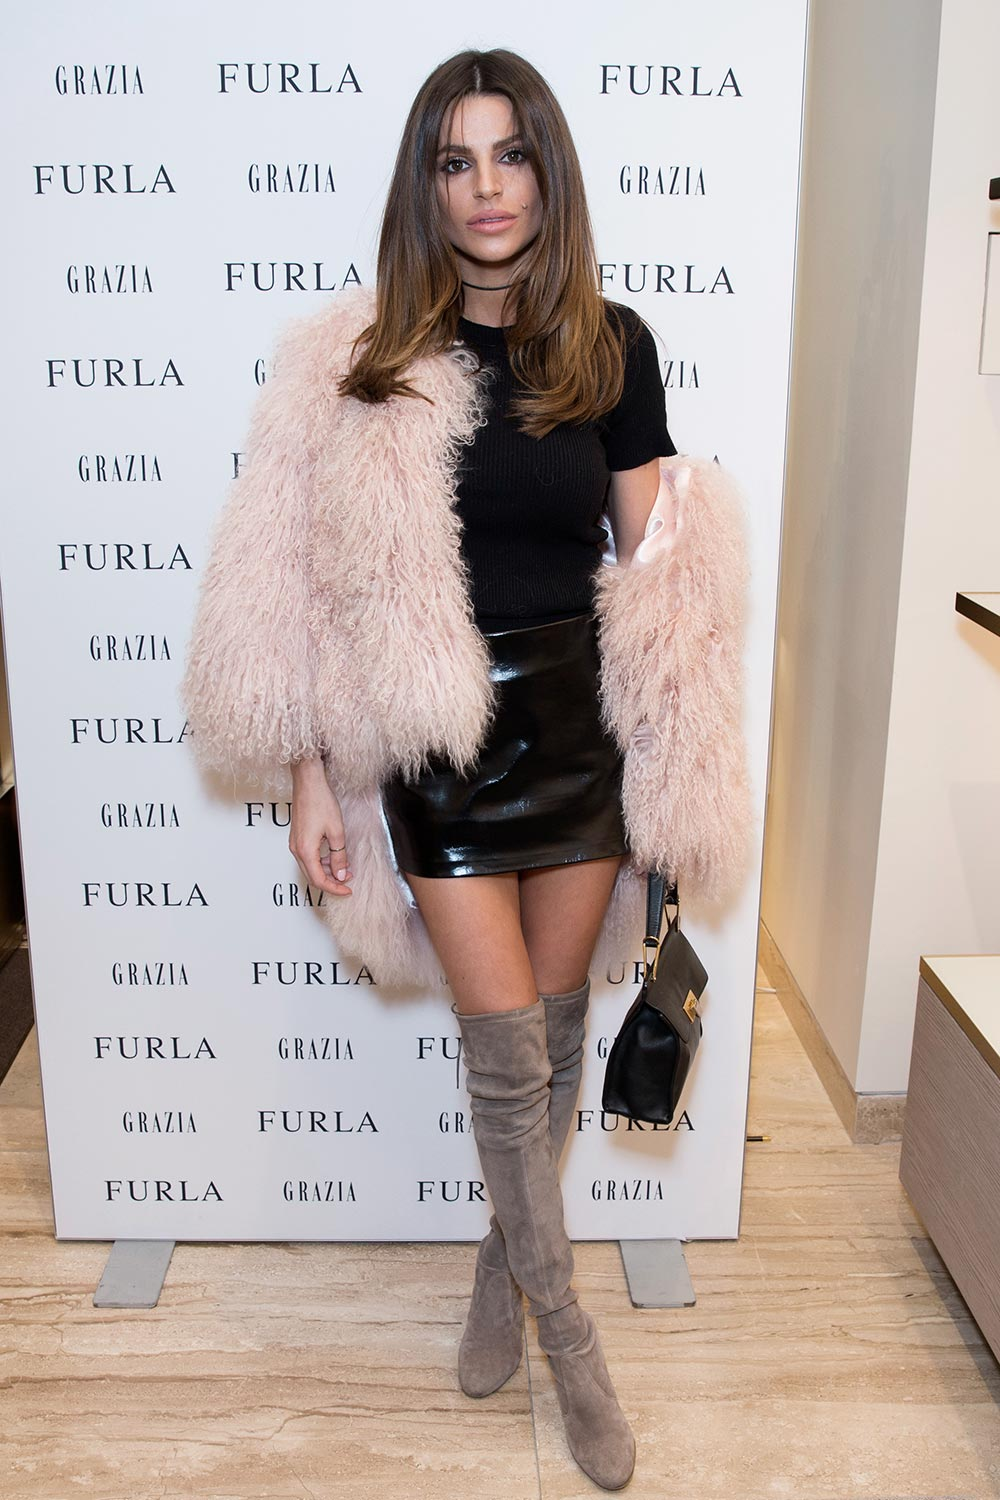 Missi Beqir attends a VIP party to celebrate the opening of luxury Italian brand Furla